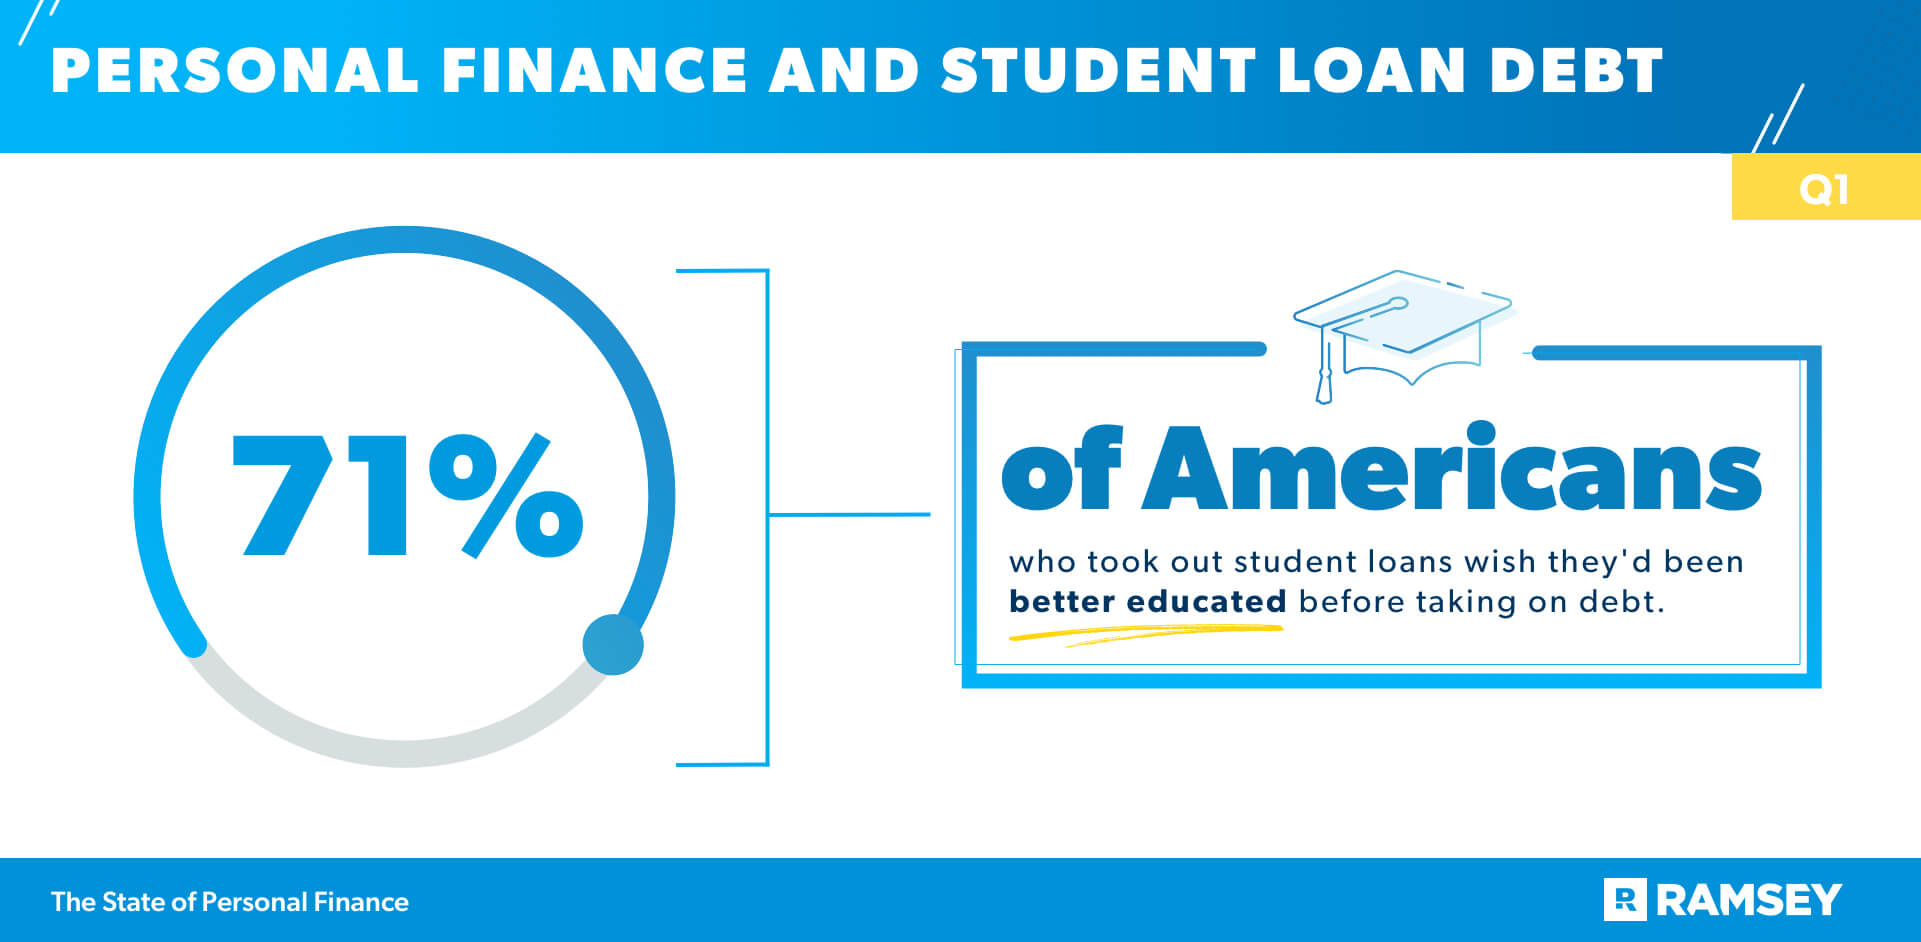 Personal Finance and Student Loan Debt